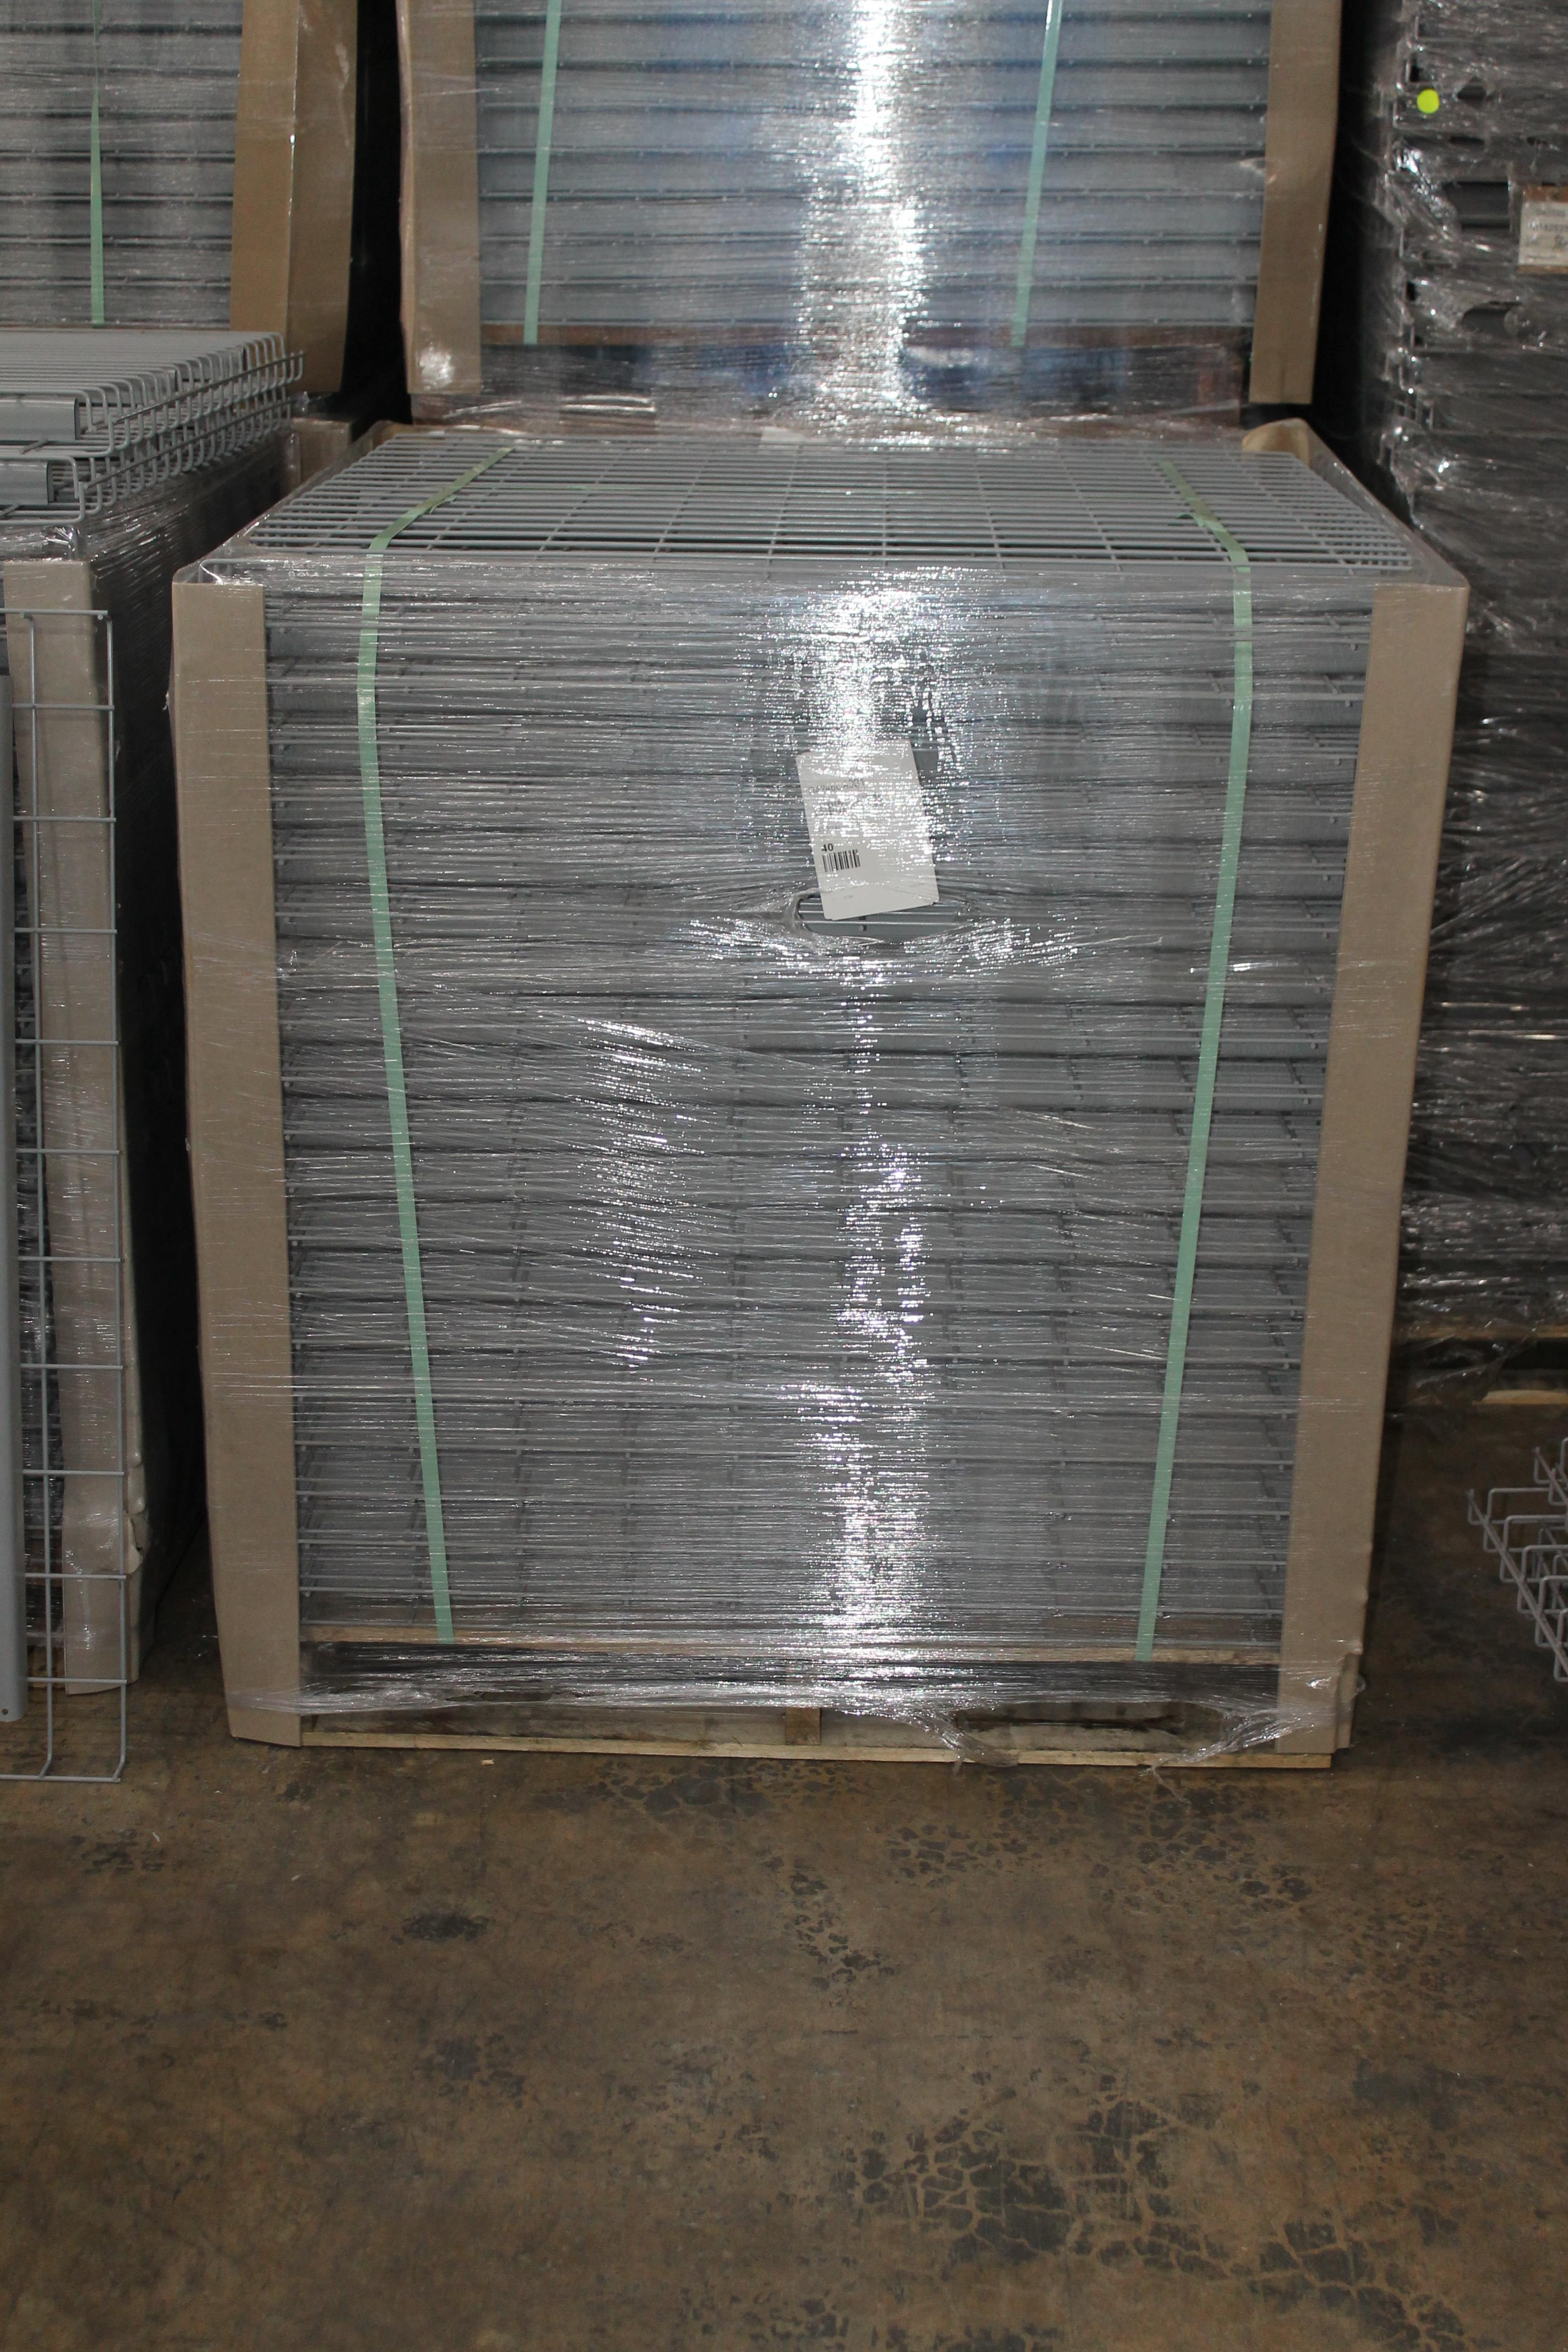 """NEW 40 PCS OF STANDARD 42"""" X 46"""" WIREDECK - 2200 LBS CAPACITY - Image 2 of 2"""